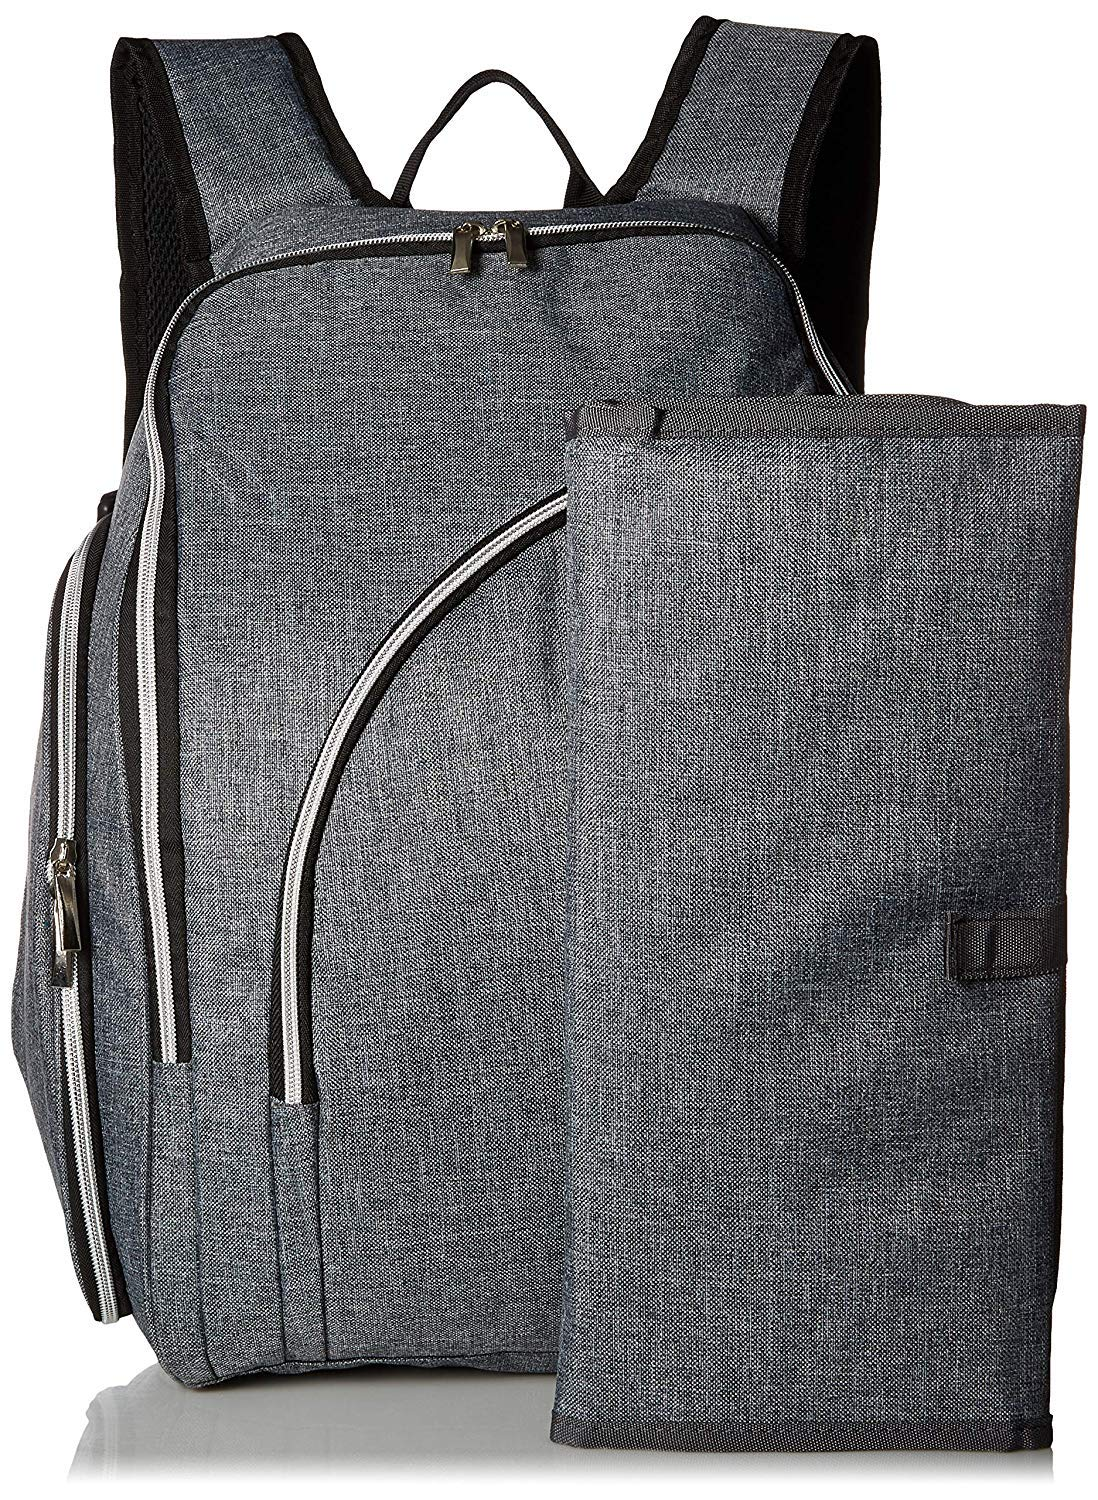 Diaper Backpack, Travel Diaper Backpack with Changing Mat | Anti-Theft Travel Bag w/Insulated Bottle Pocket, Waterproof Pocket, Wipes Storage, Laptop Sleeve, Stroller Straps | Grey